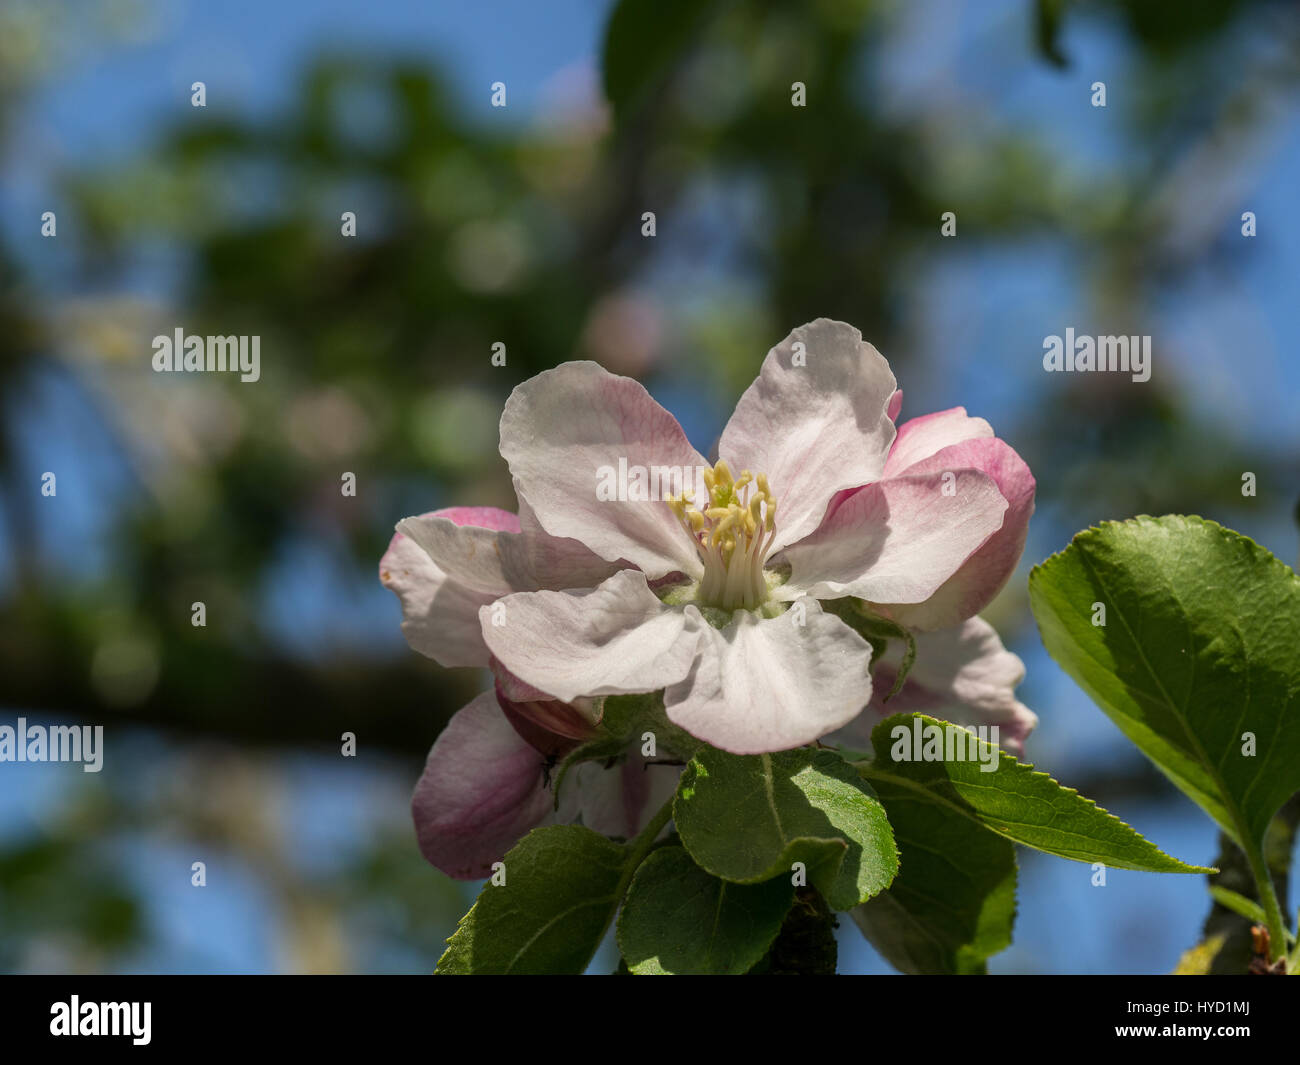 Close up of a bramley apple flower - Stock Image